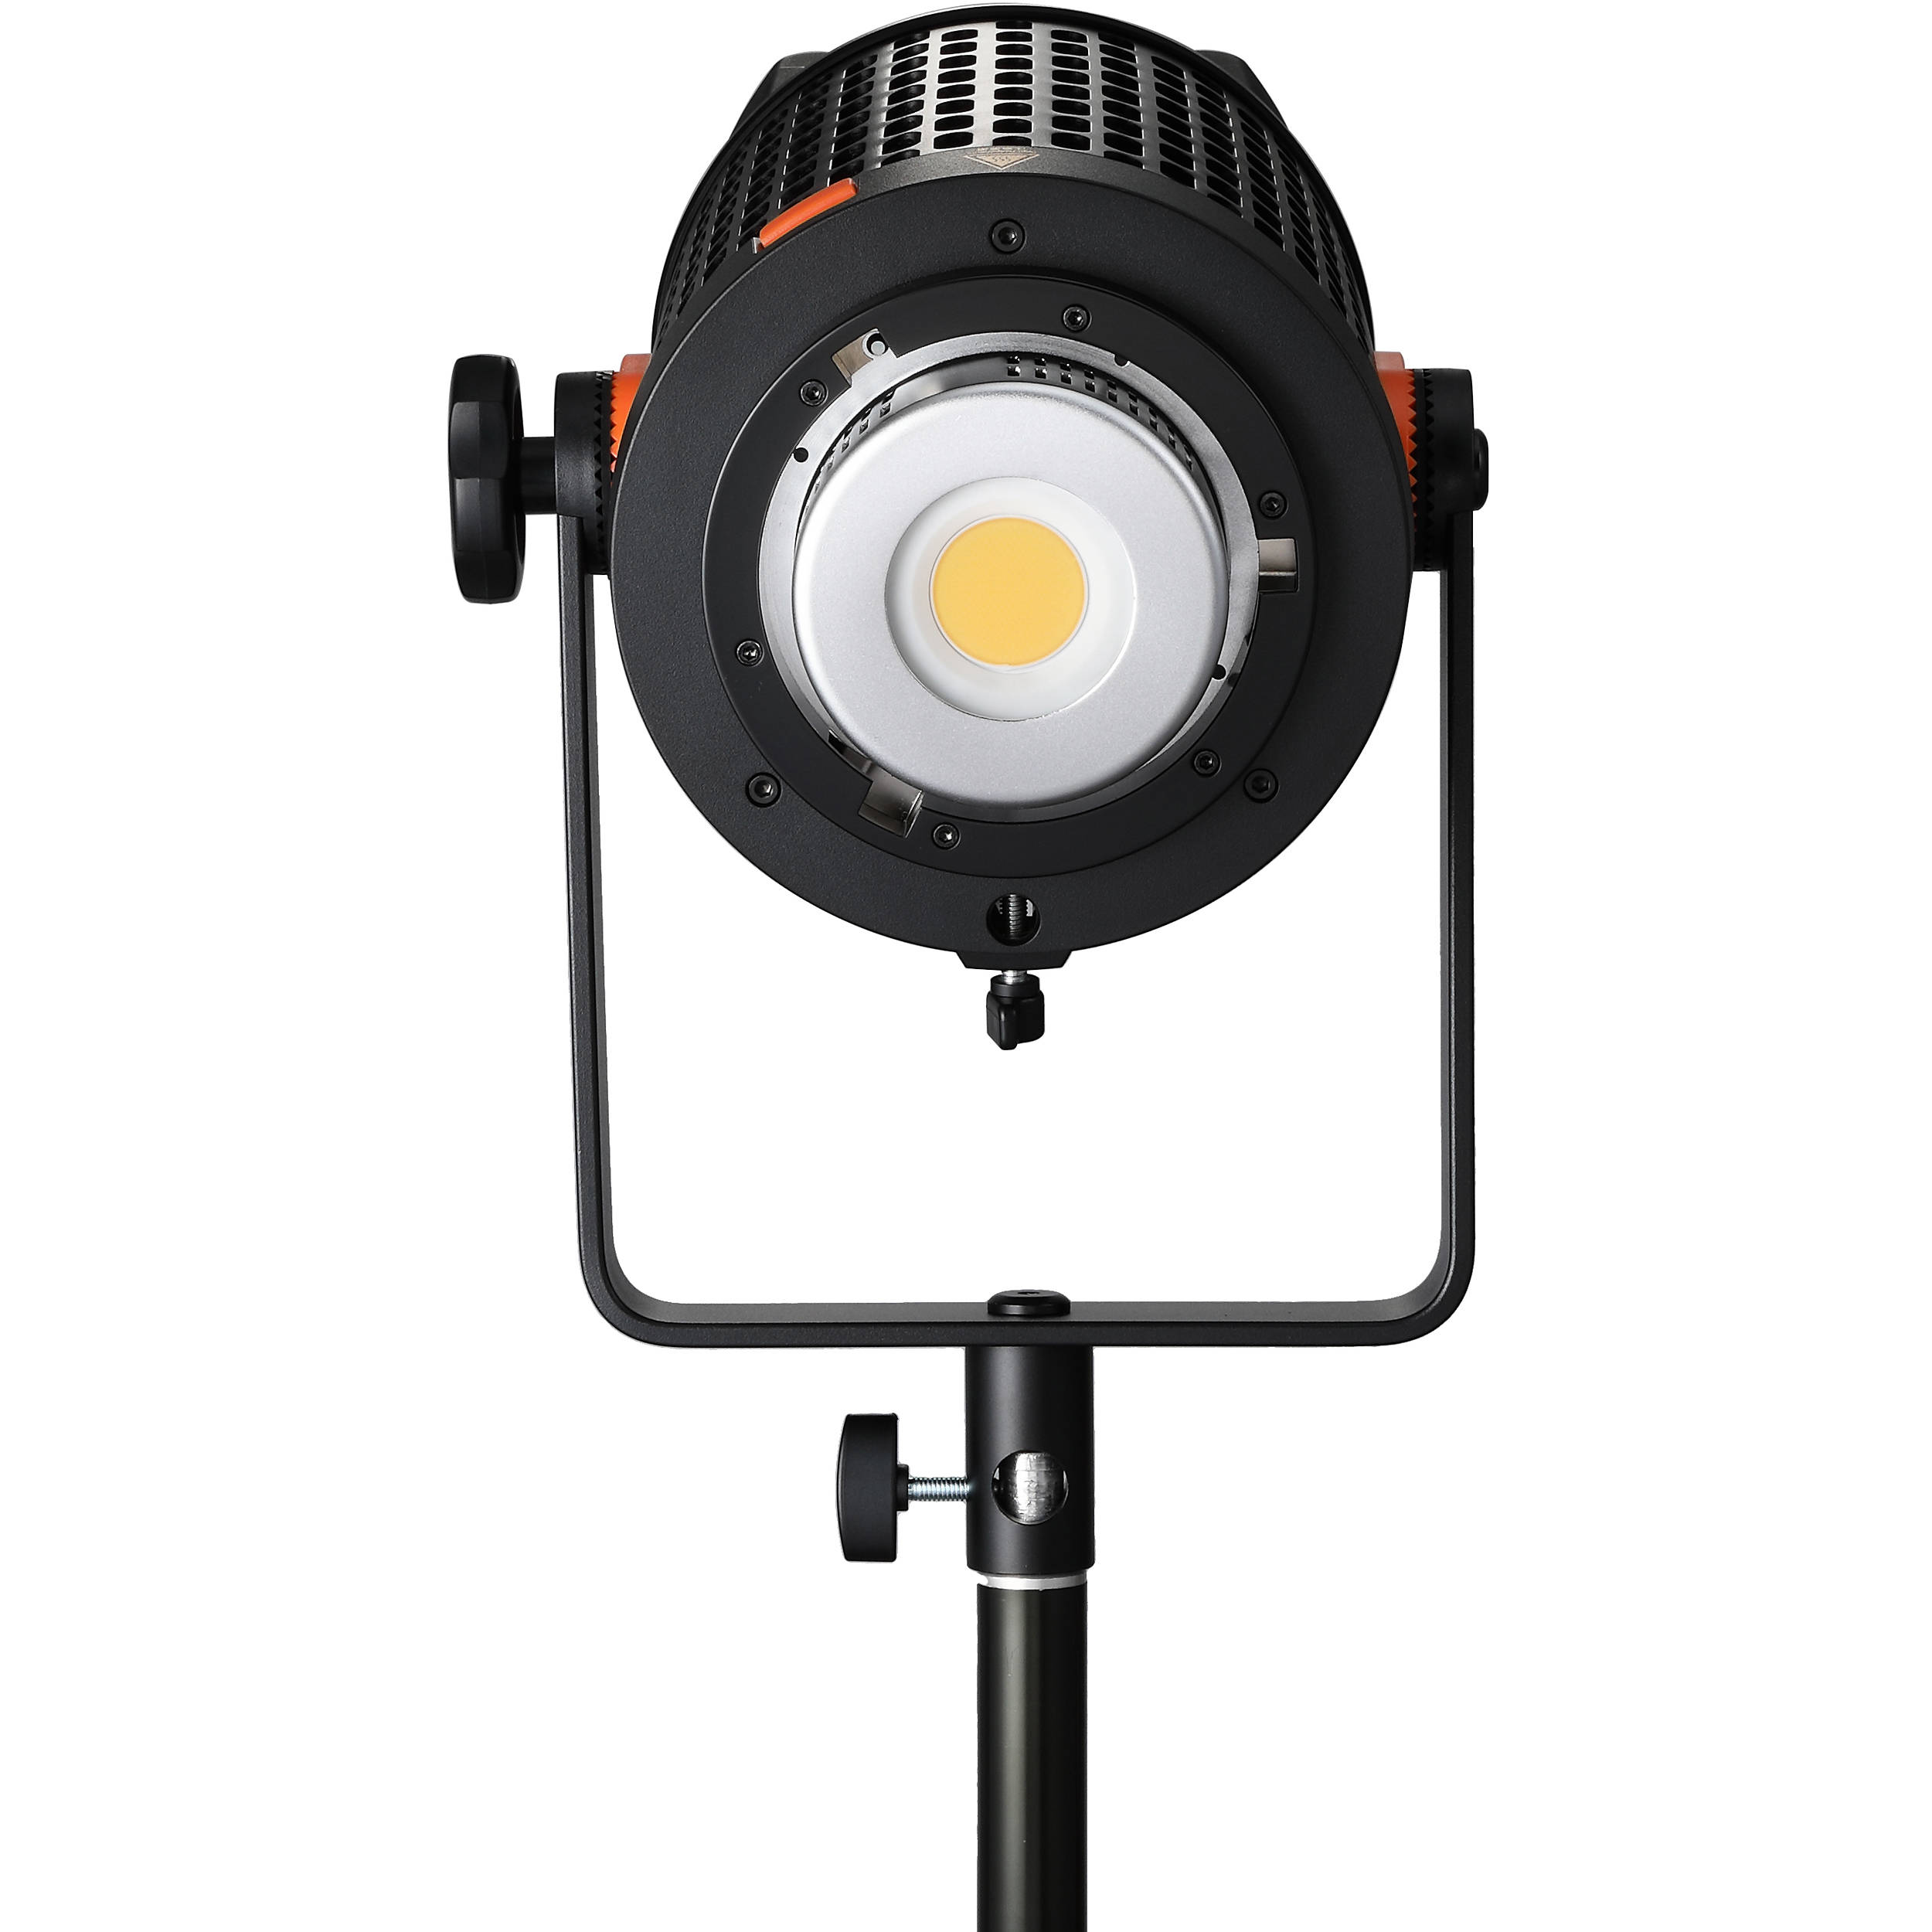 Heat-Dissipation System 150W 5600K Daylight Balanced Silent Led Video Light Remote Control and App Support Godox UL150 58000LUX@1M 6 Groups 16 Channels CRI96 TLCI97